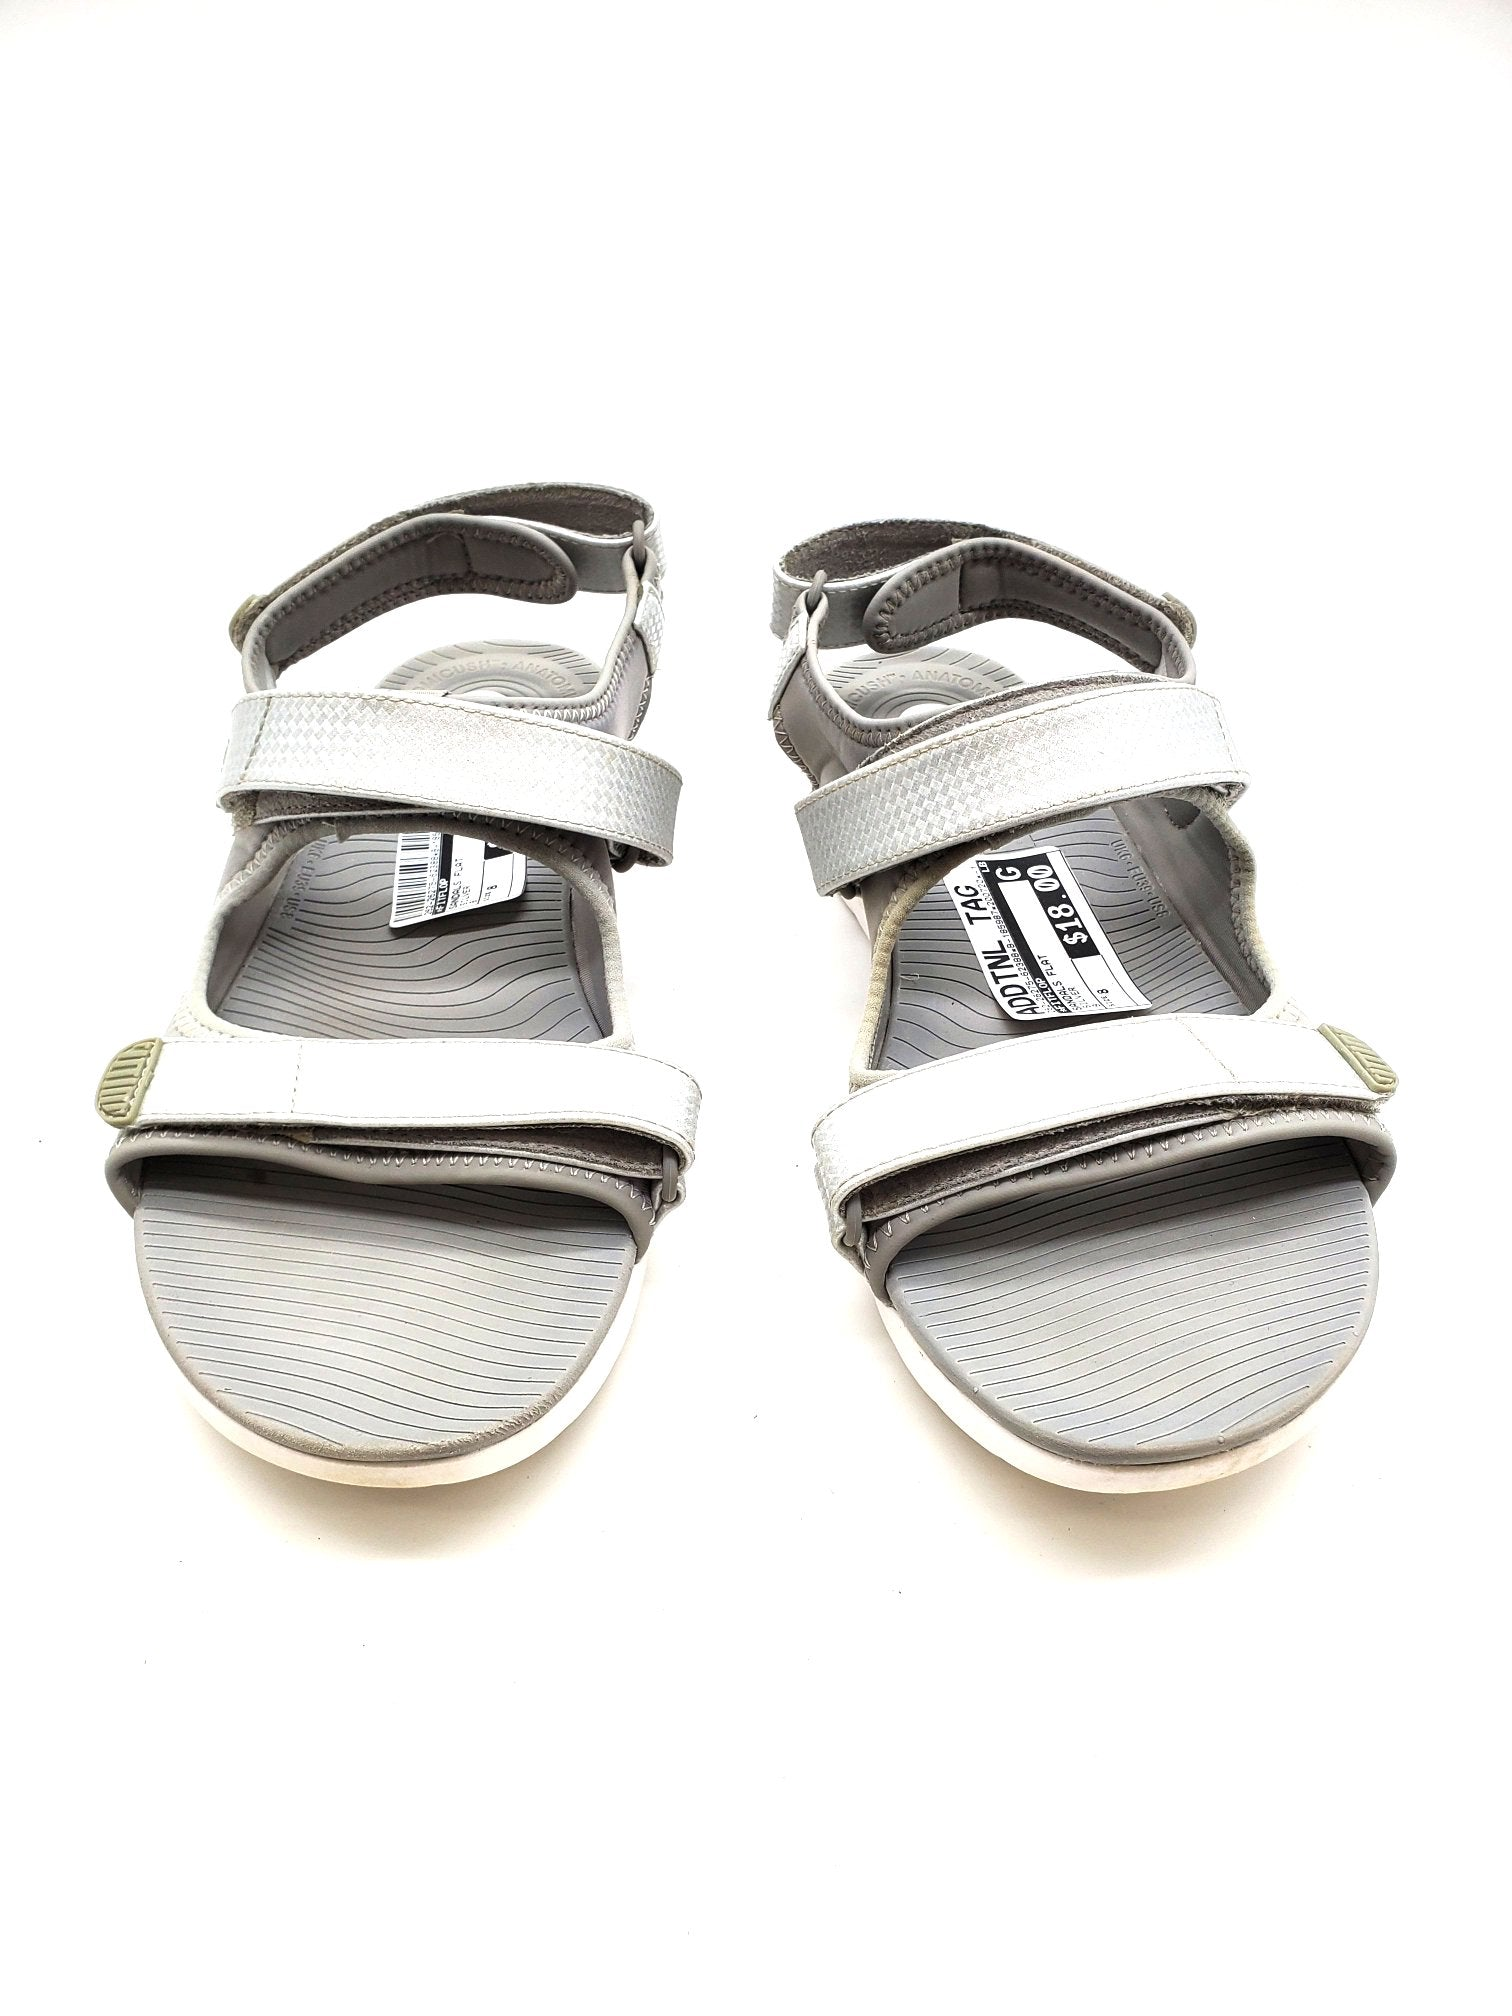 Primary Photo - BRAND: FITFLOP <BR>STYLE: SANDALS FLAT <BR>COLOR: SILVER <BR>SIZE: 8 <BR>SKU: 262-26275-62388<BR>AS IS